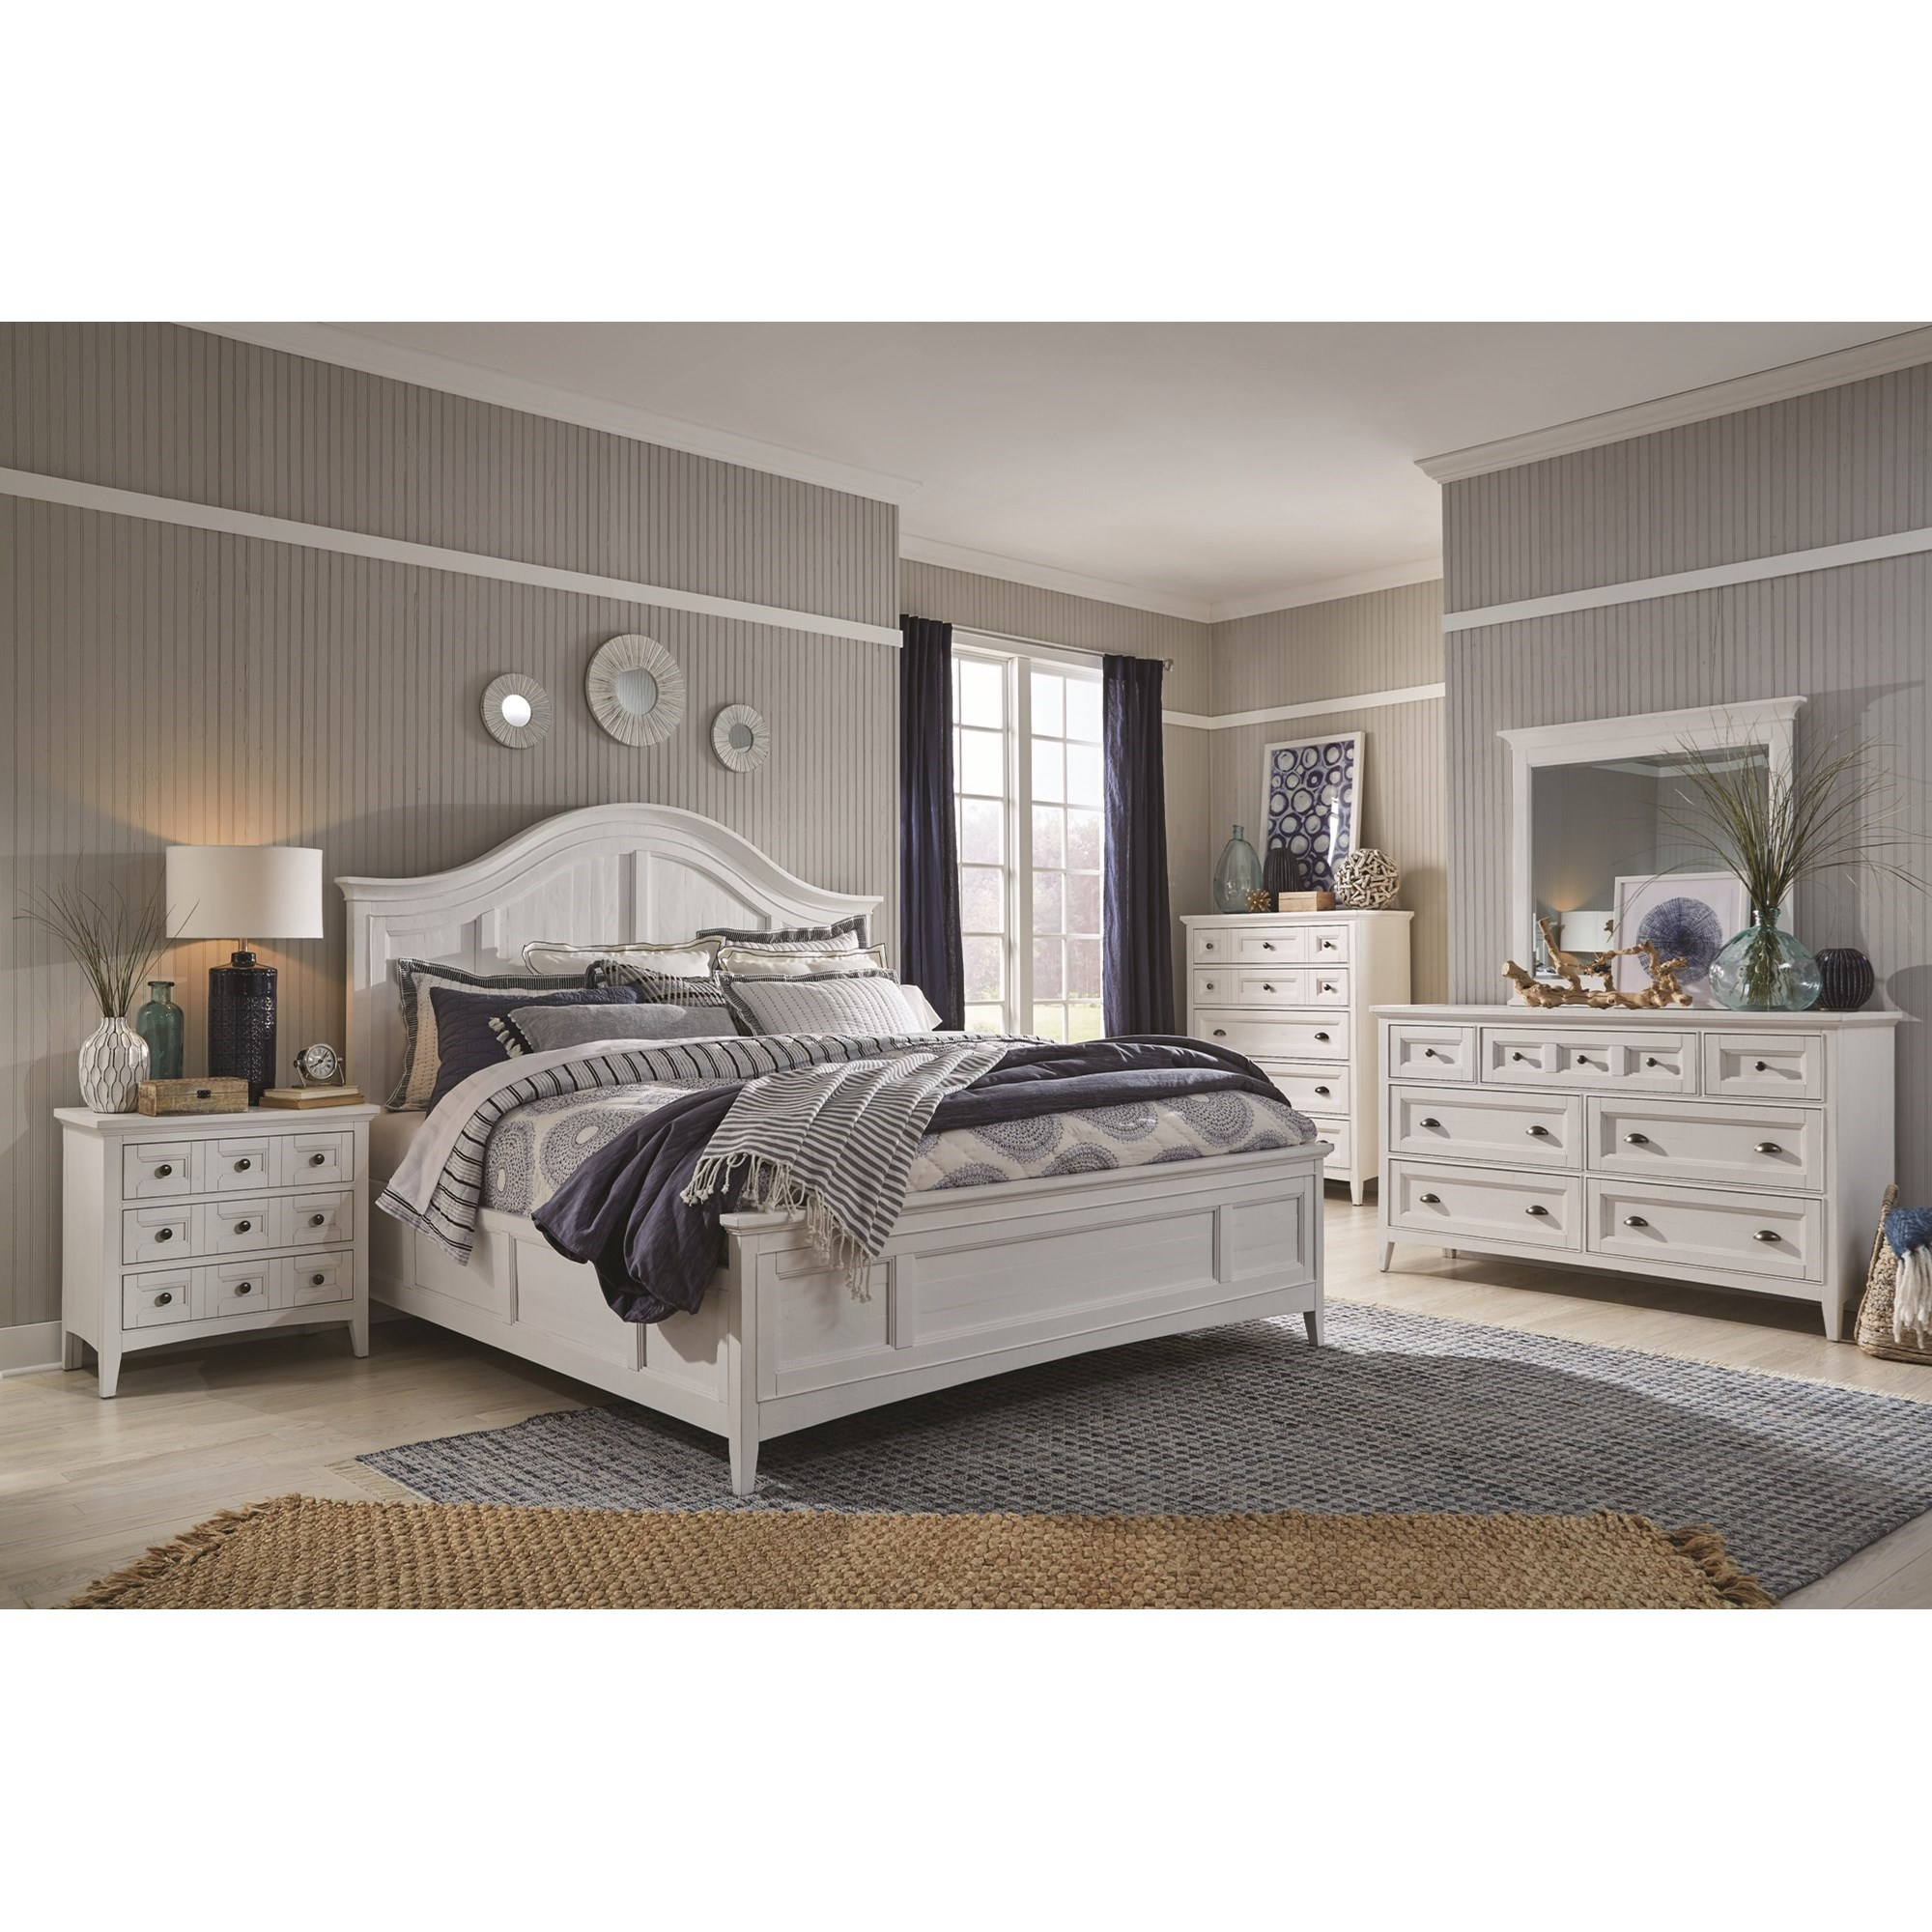 Heron Cove Queen Bedroom Group by Magnussen Home at Stoney Creek Furniture